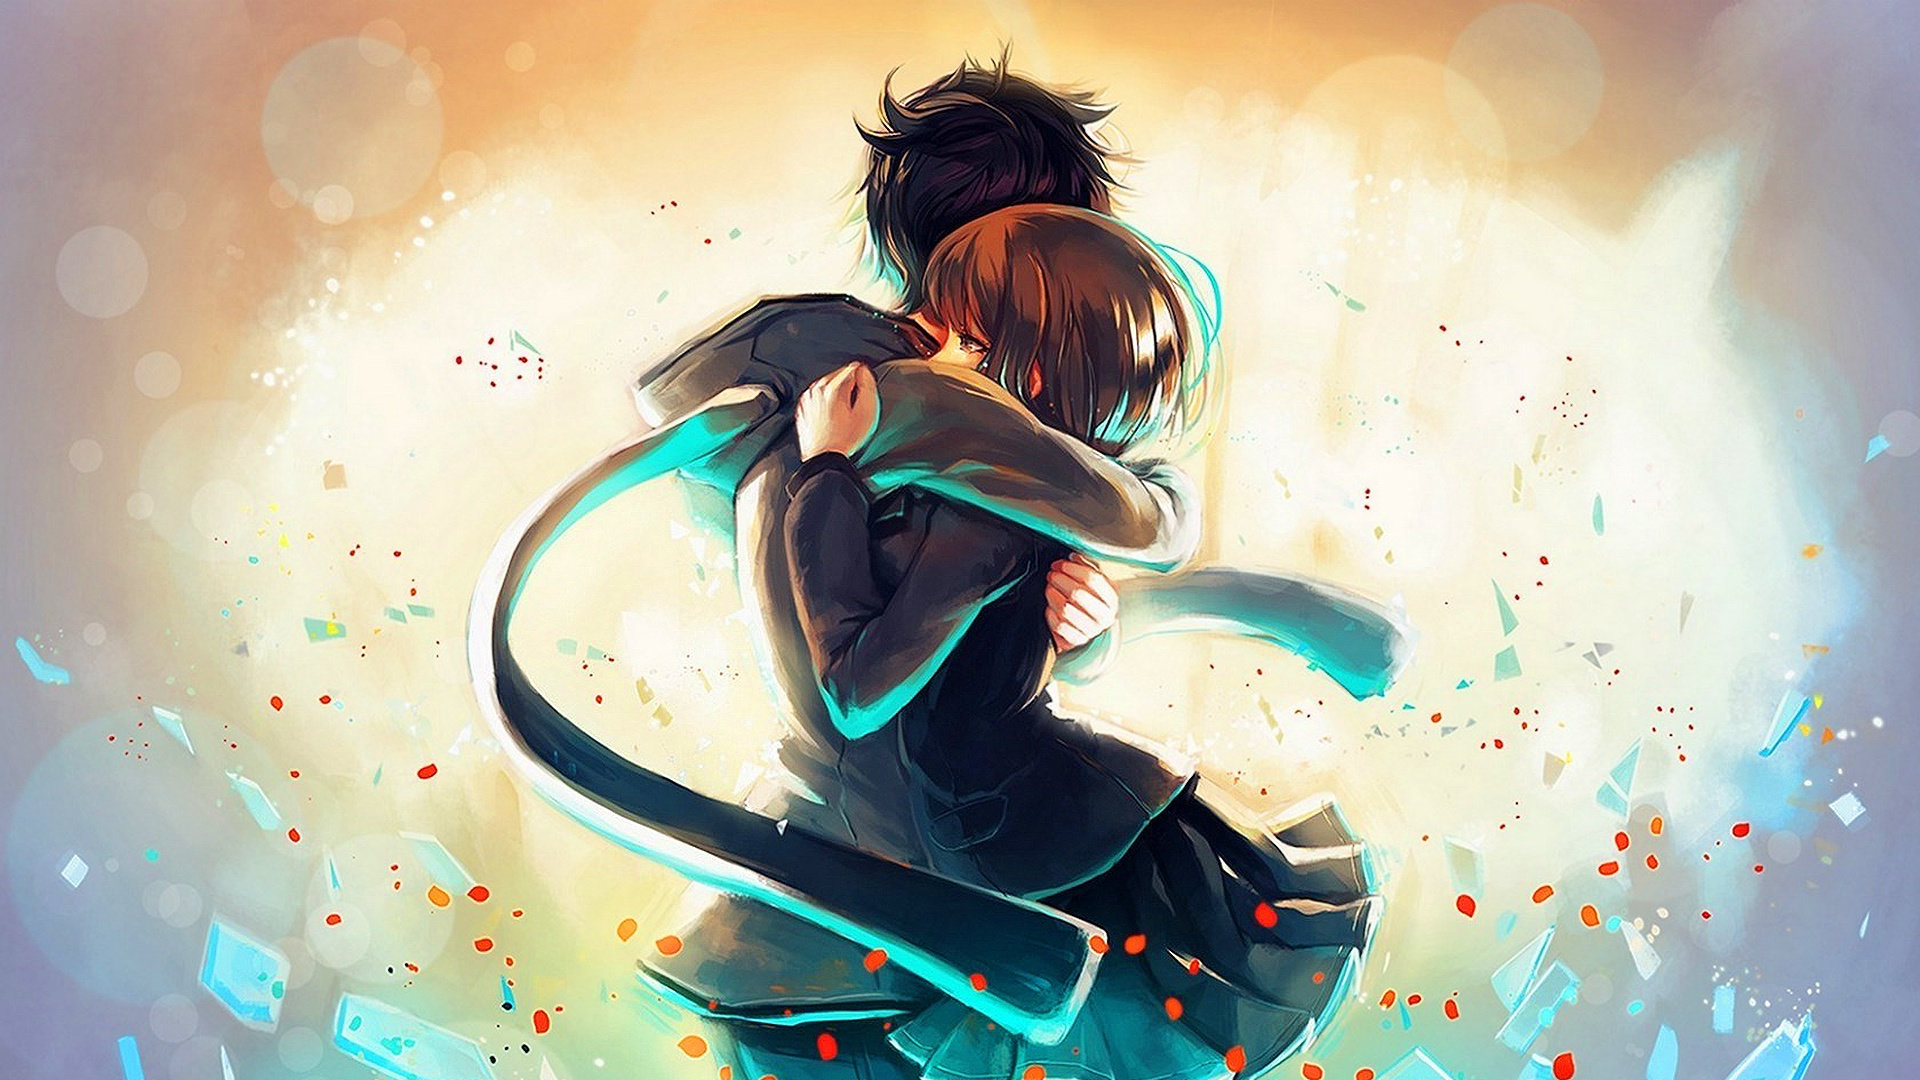 anime-hug-boy-girl-%C3%97-wallpaper-wp5803519